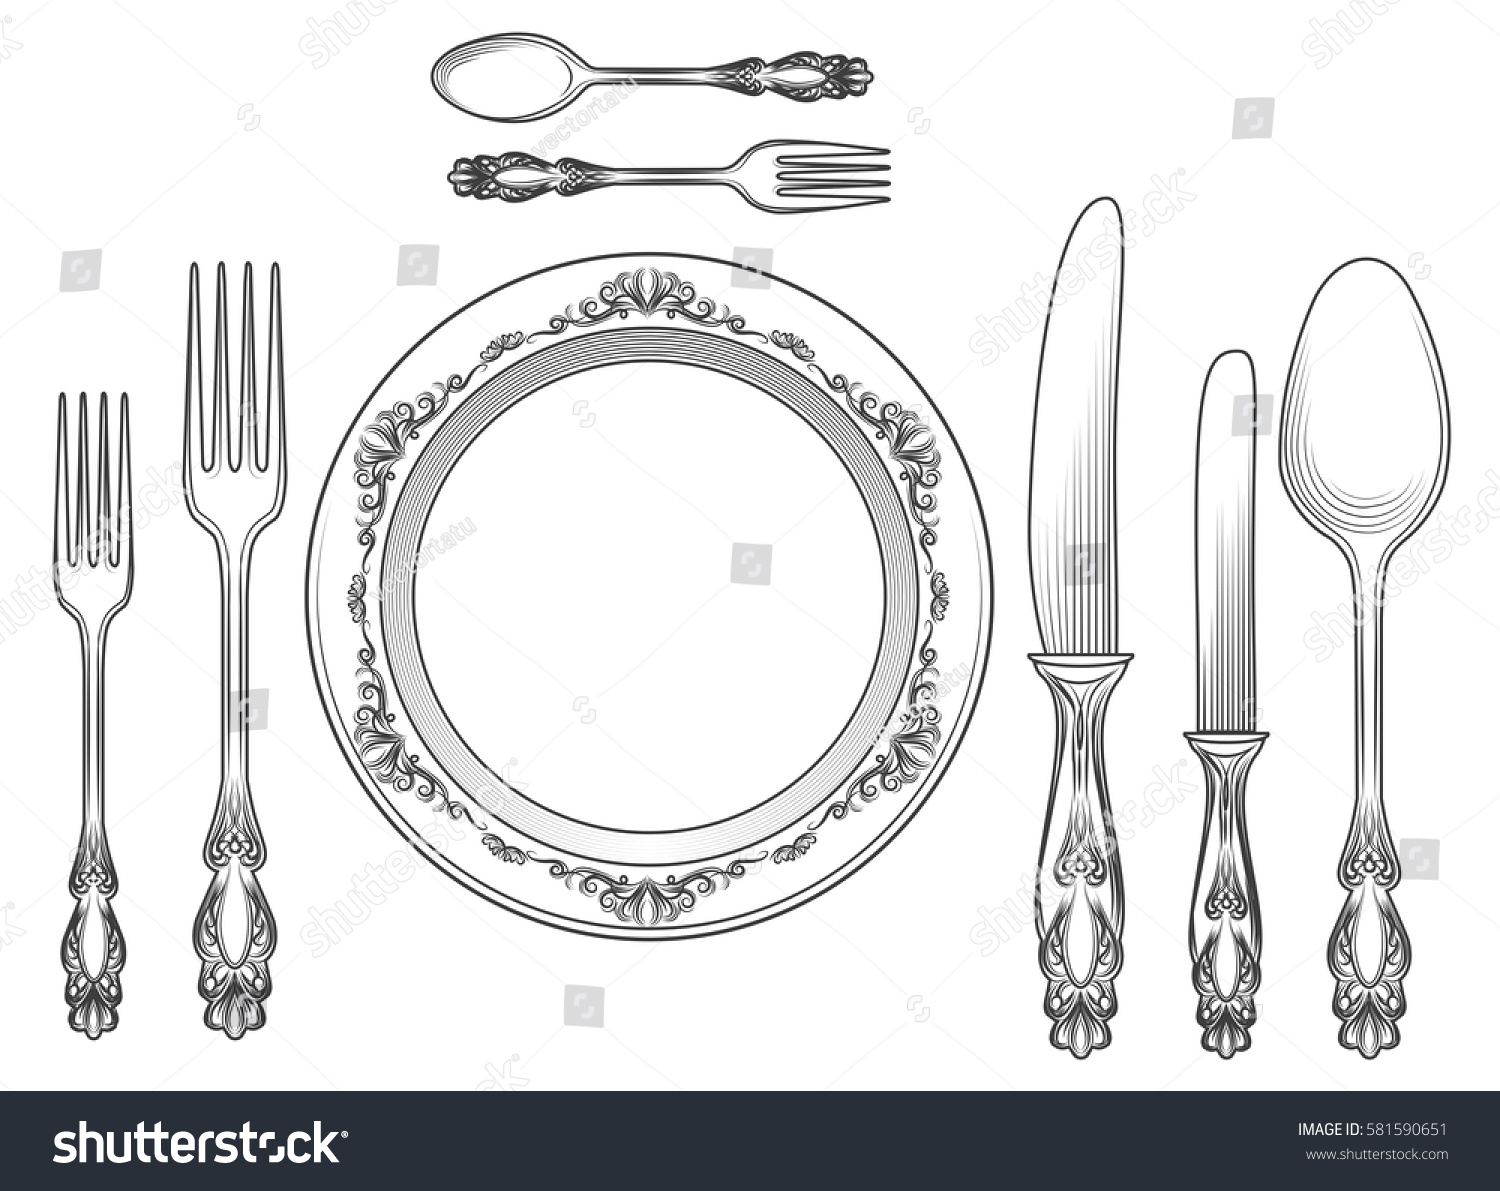 How To Arrange Cutlery On Dining Table Images Dining  : stock vector engraving empty plate with spoon knife and fork vector illustration cutlery and dinner plates 581590651 from sorahana.info size 1500 x 1191 jpeg 335kB